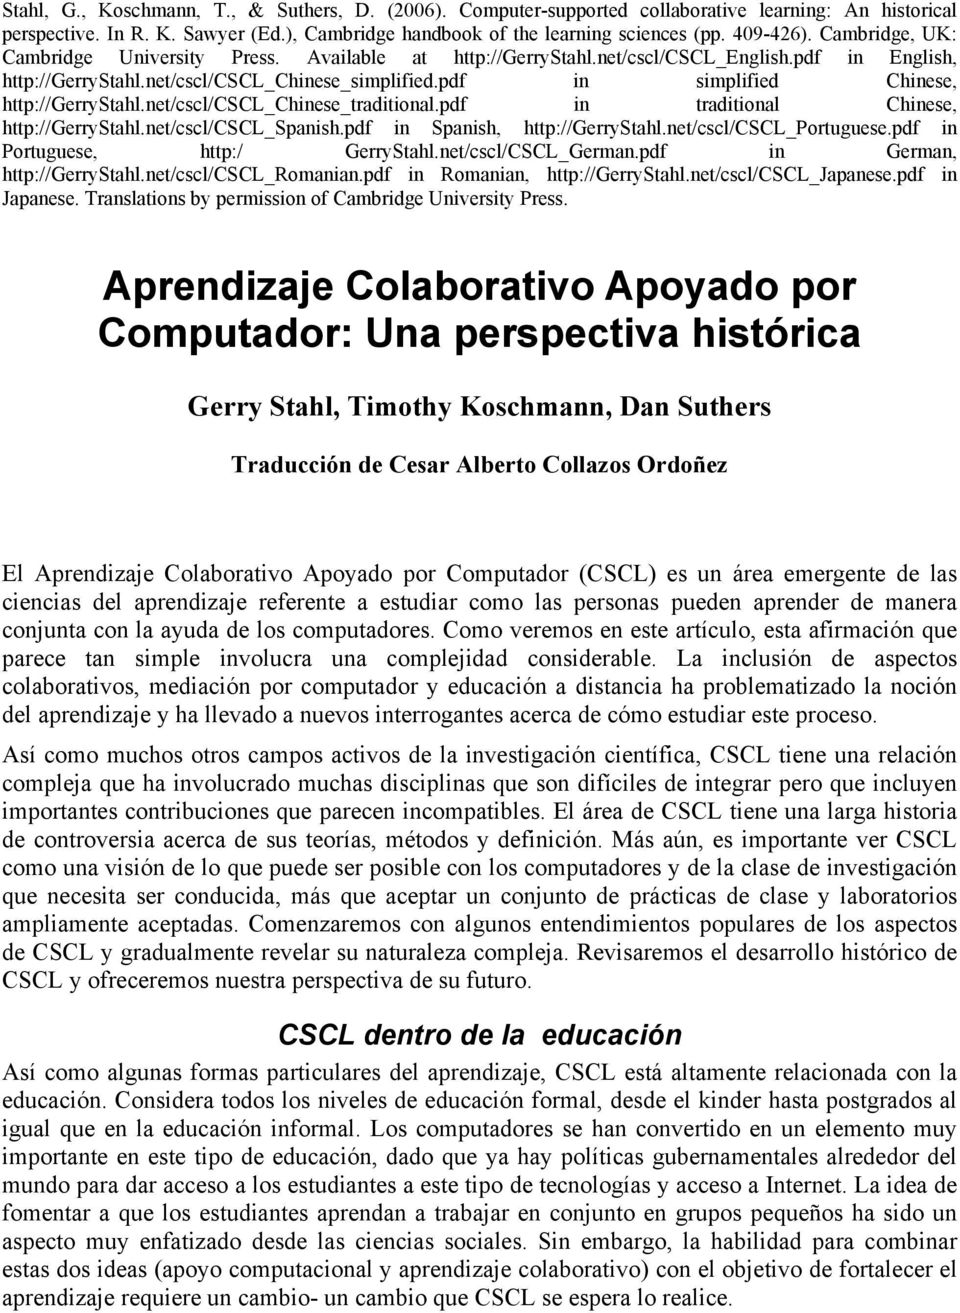 pdf in simplified Chinese, http://gerrystahl.net/cscl/cscl_chinese_traditional.pdf in traditional Chinese, http://gerrystahl.net/cscl/cscl_spanish.pdf in Spanish, http://gerrystahl.